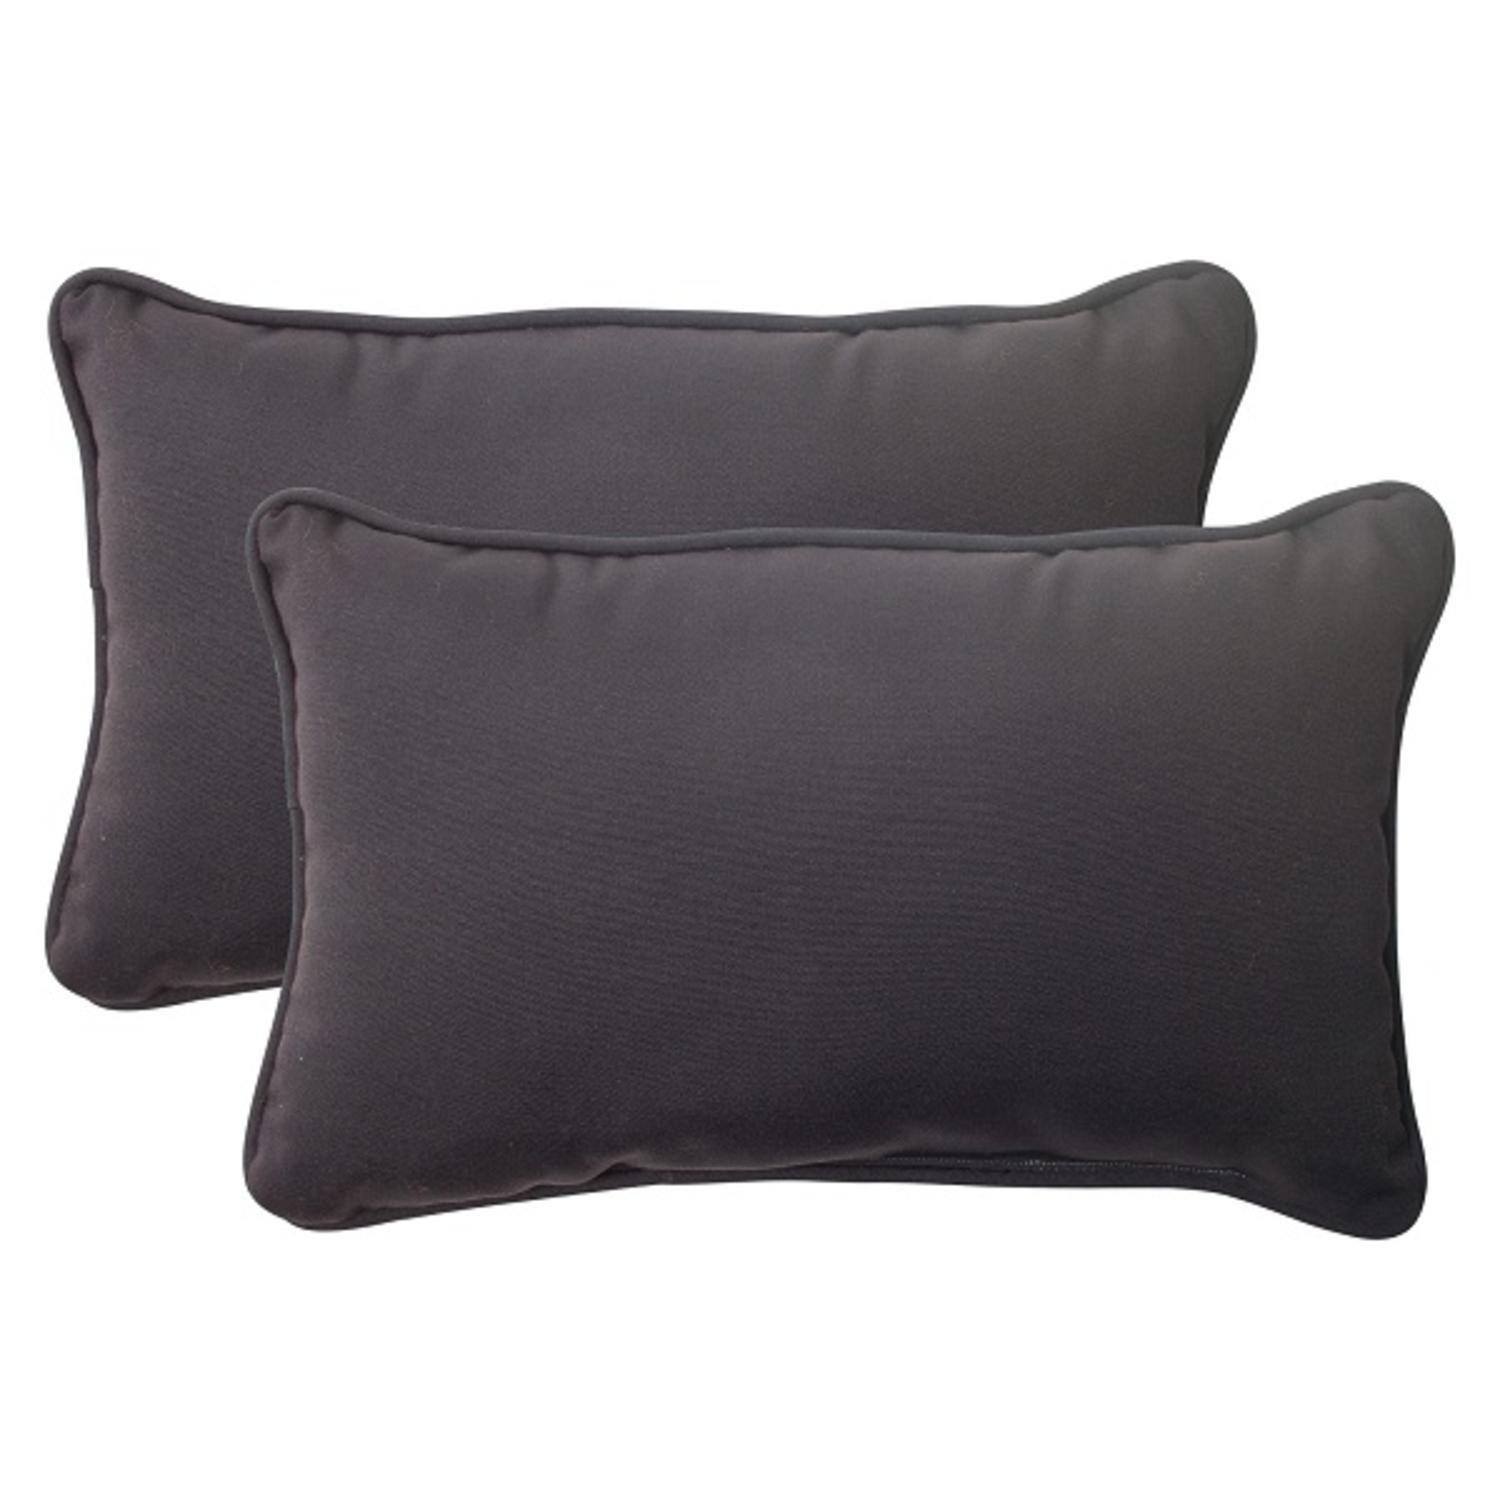 Set of 2 Solid Dark Gray Outdoor Patio Corded Rectangular Throw Pillows 18.5""